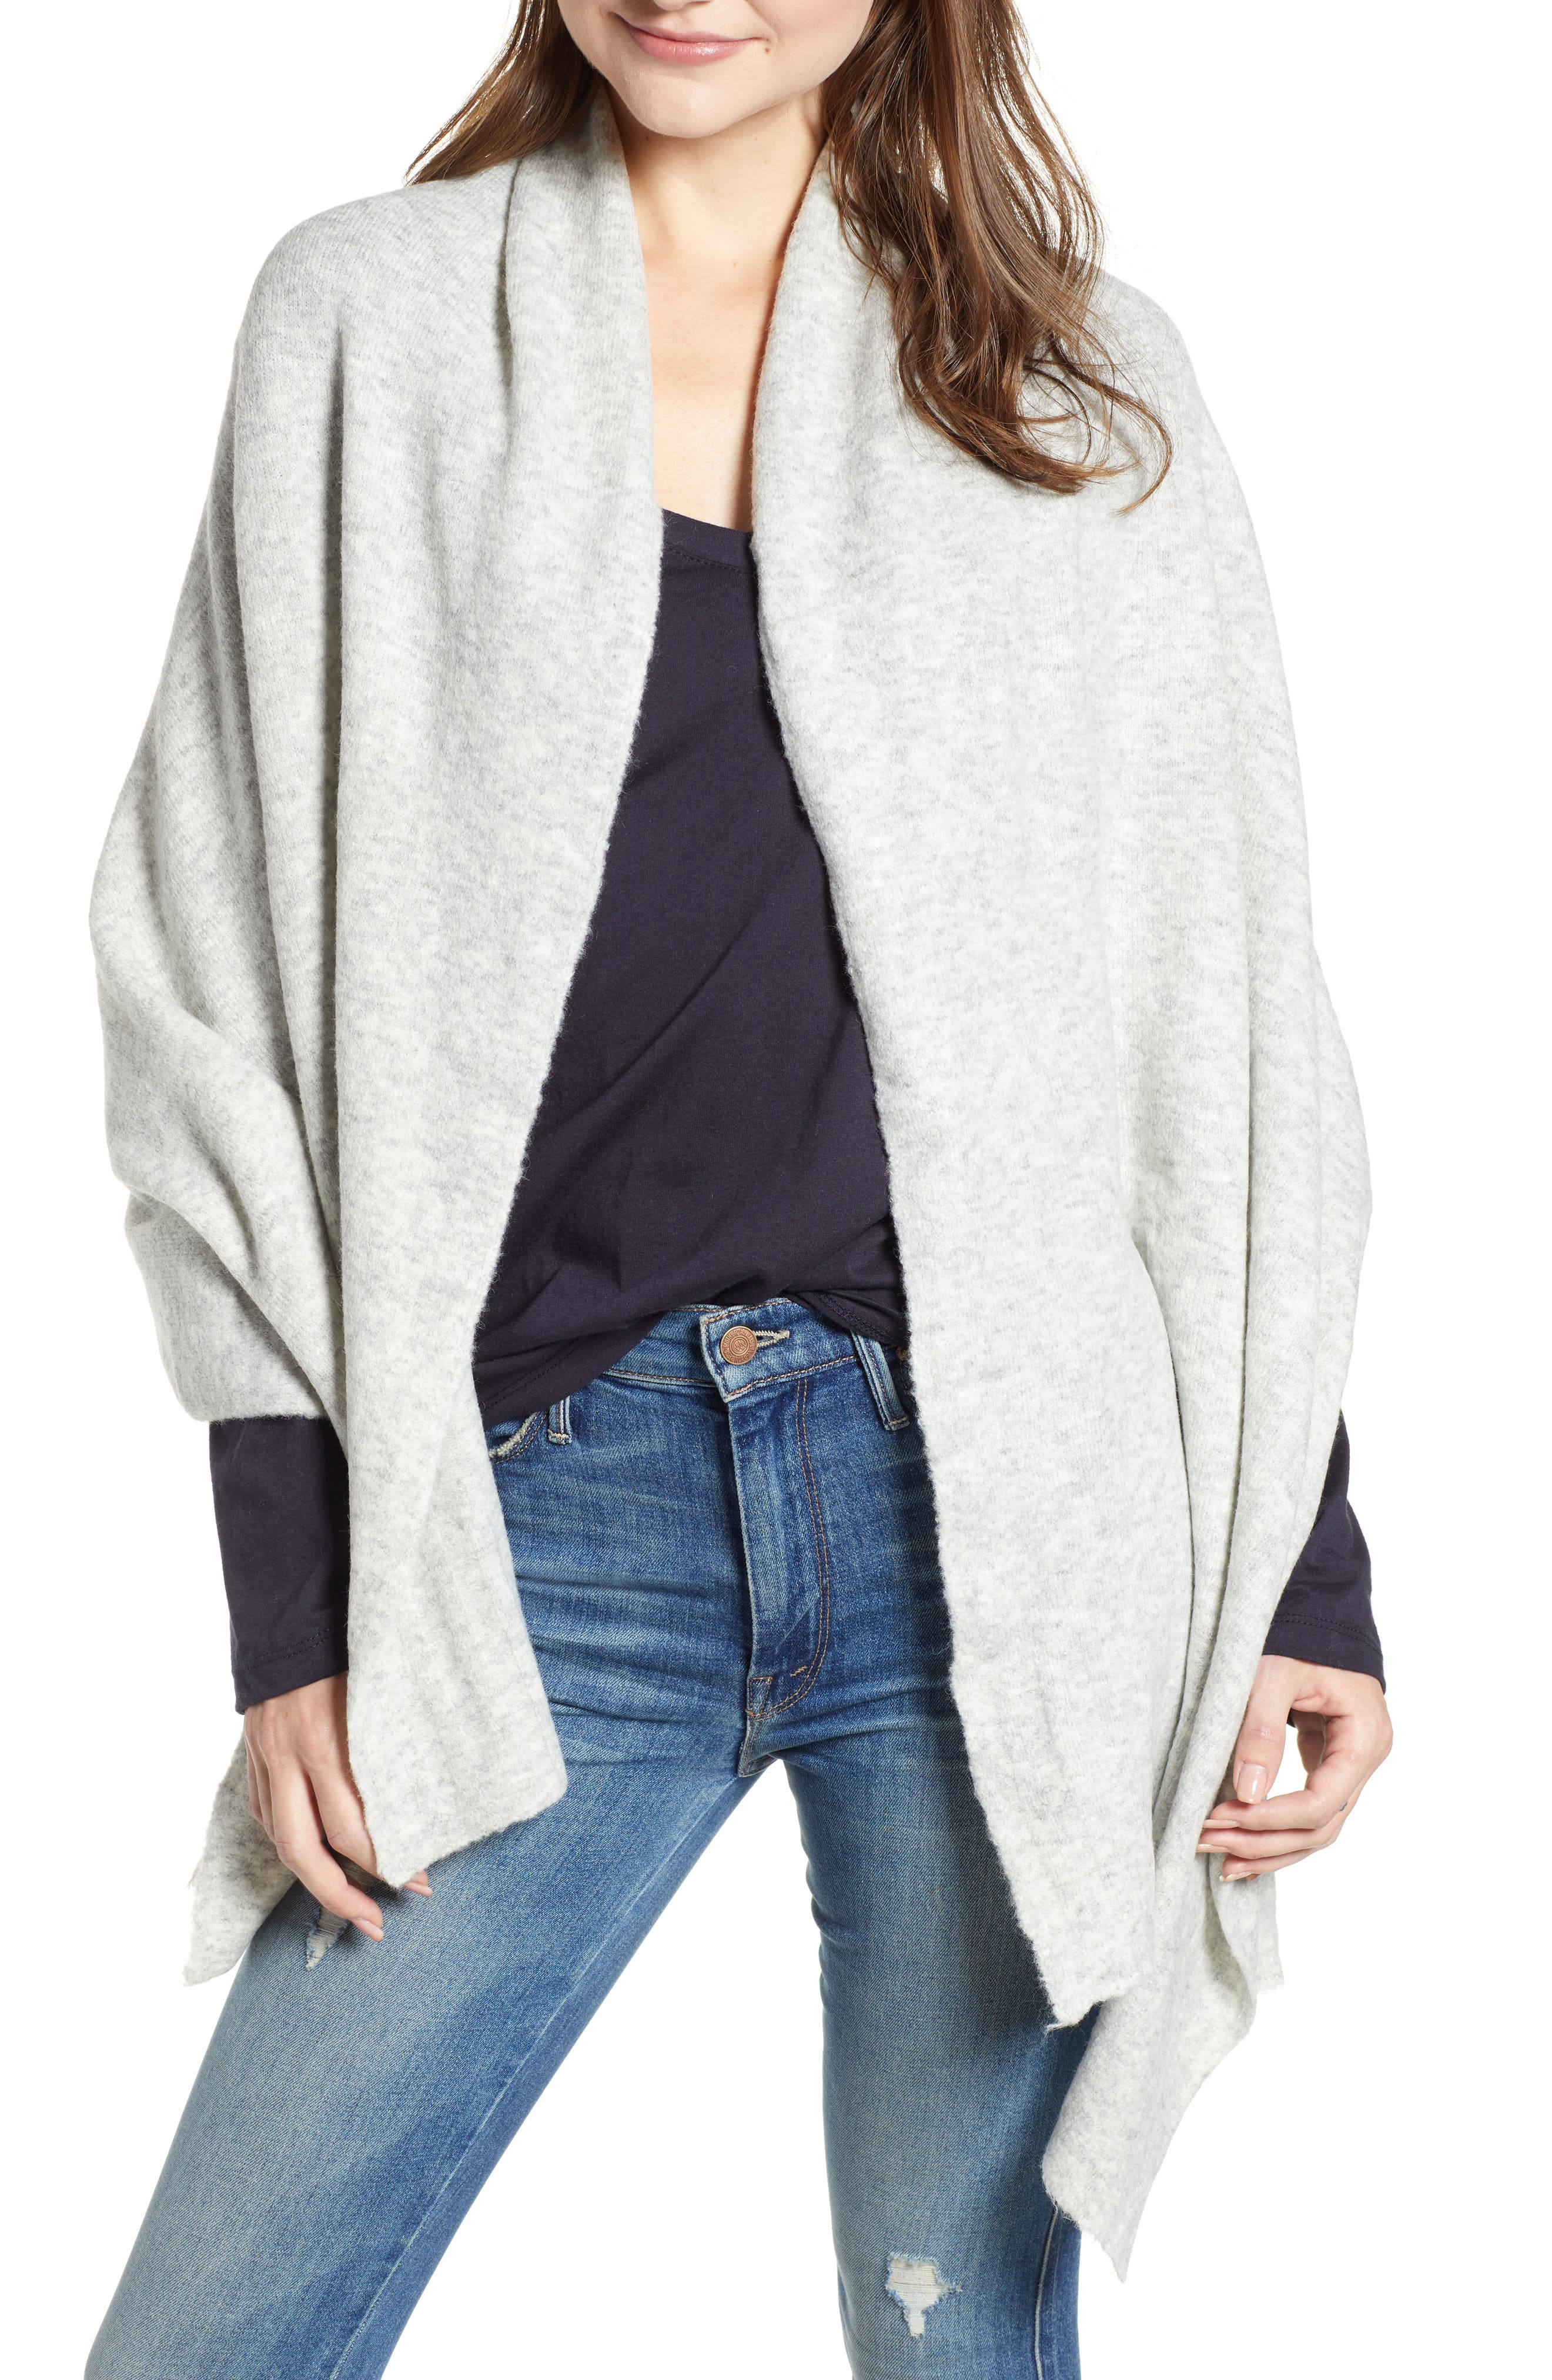 Oversized Travel Wrap,                         Main,                         color, 020